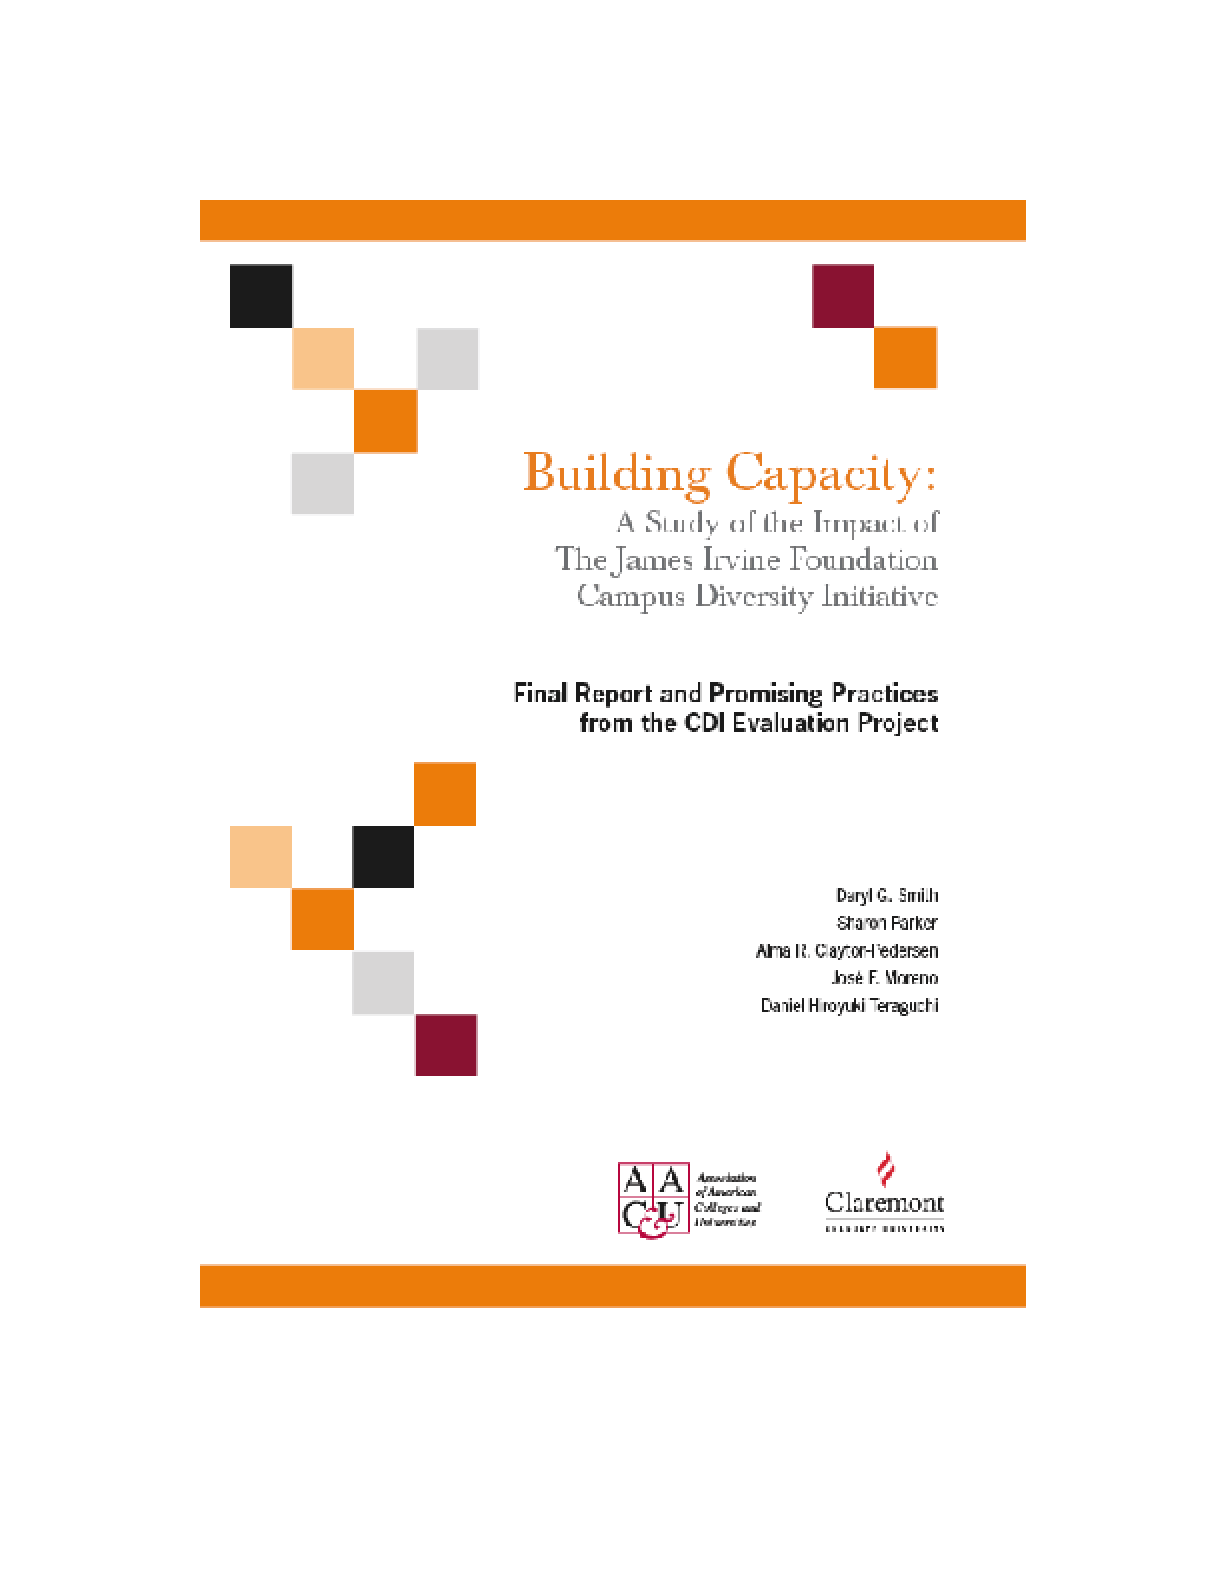 Building Capacity: A Study of the Impact of the James Irvine Foundation Campus Diversity Initiative